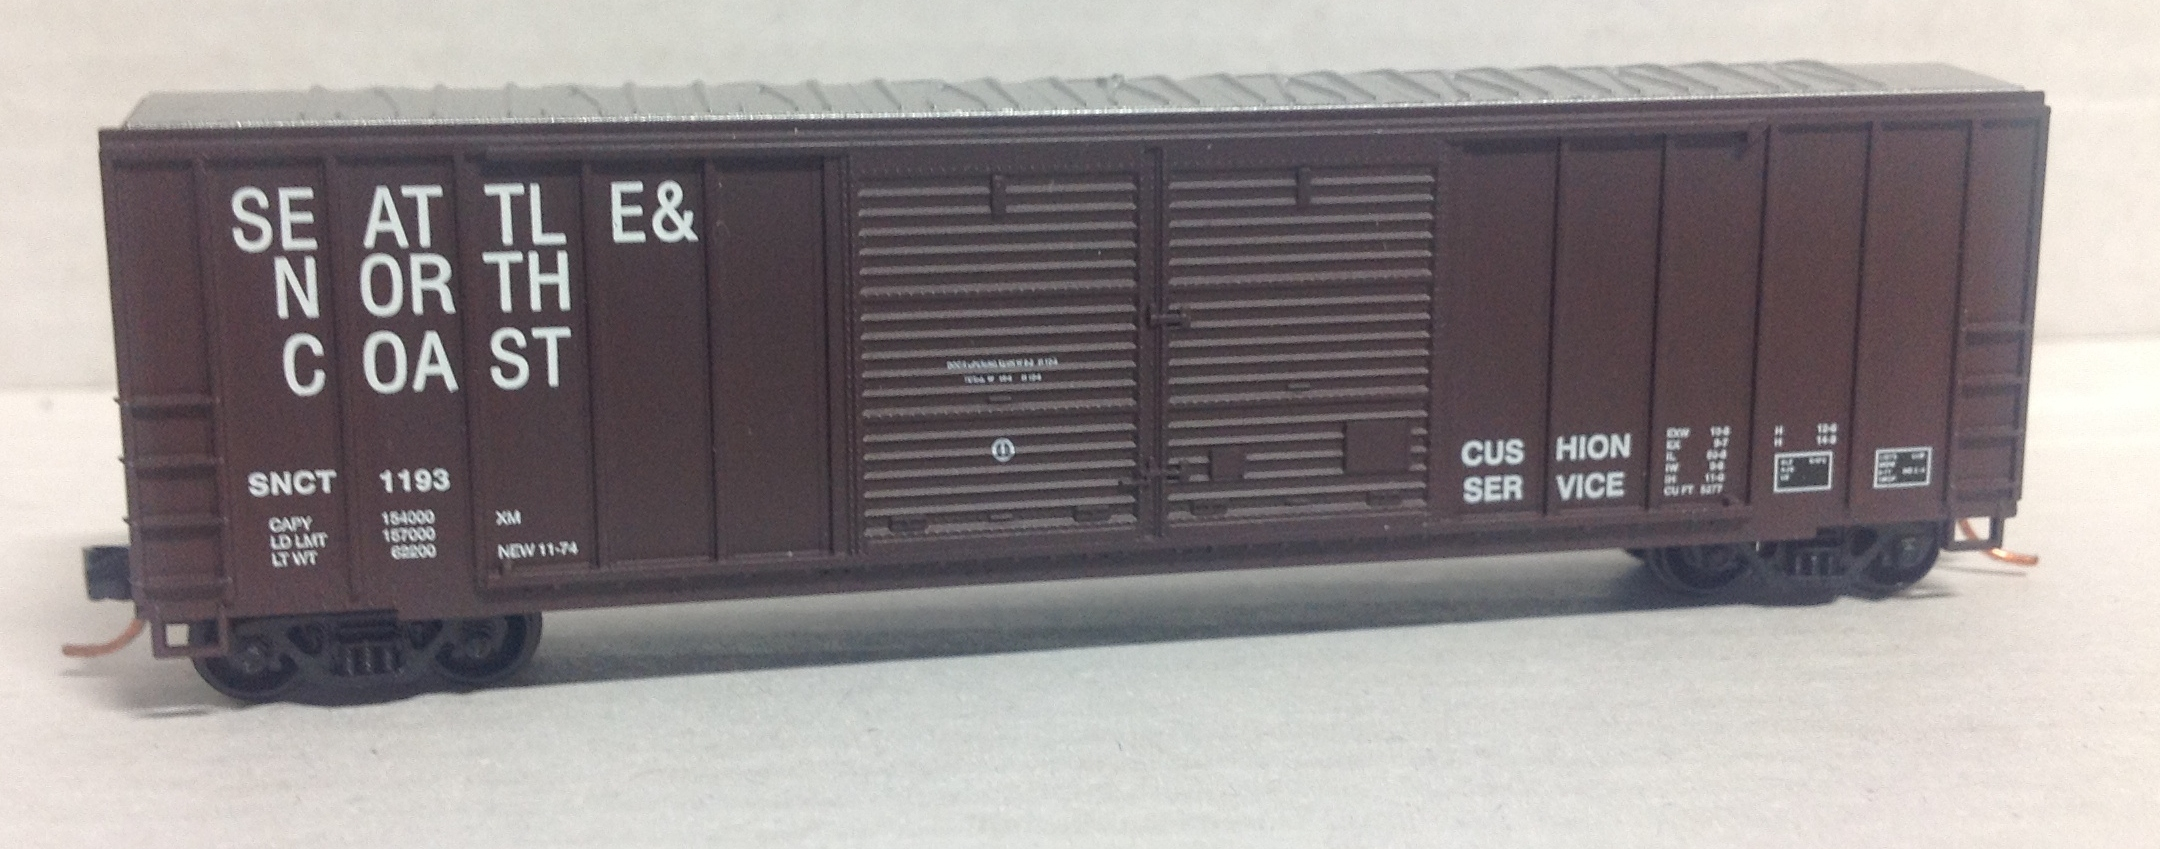 N Scale - Roundhouse - 8823 - Boxcar, 50 Foot, FMC, 5077 - Seattle & North Coast - 1193